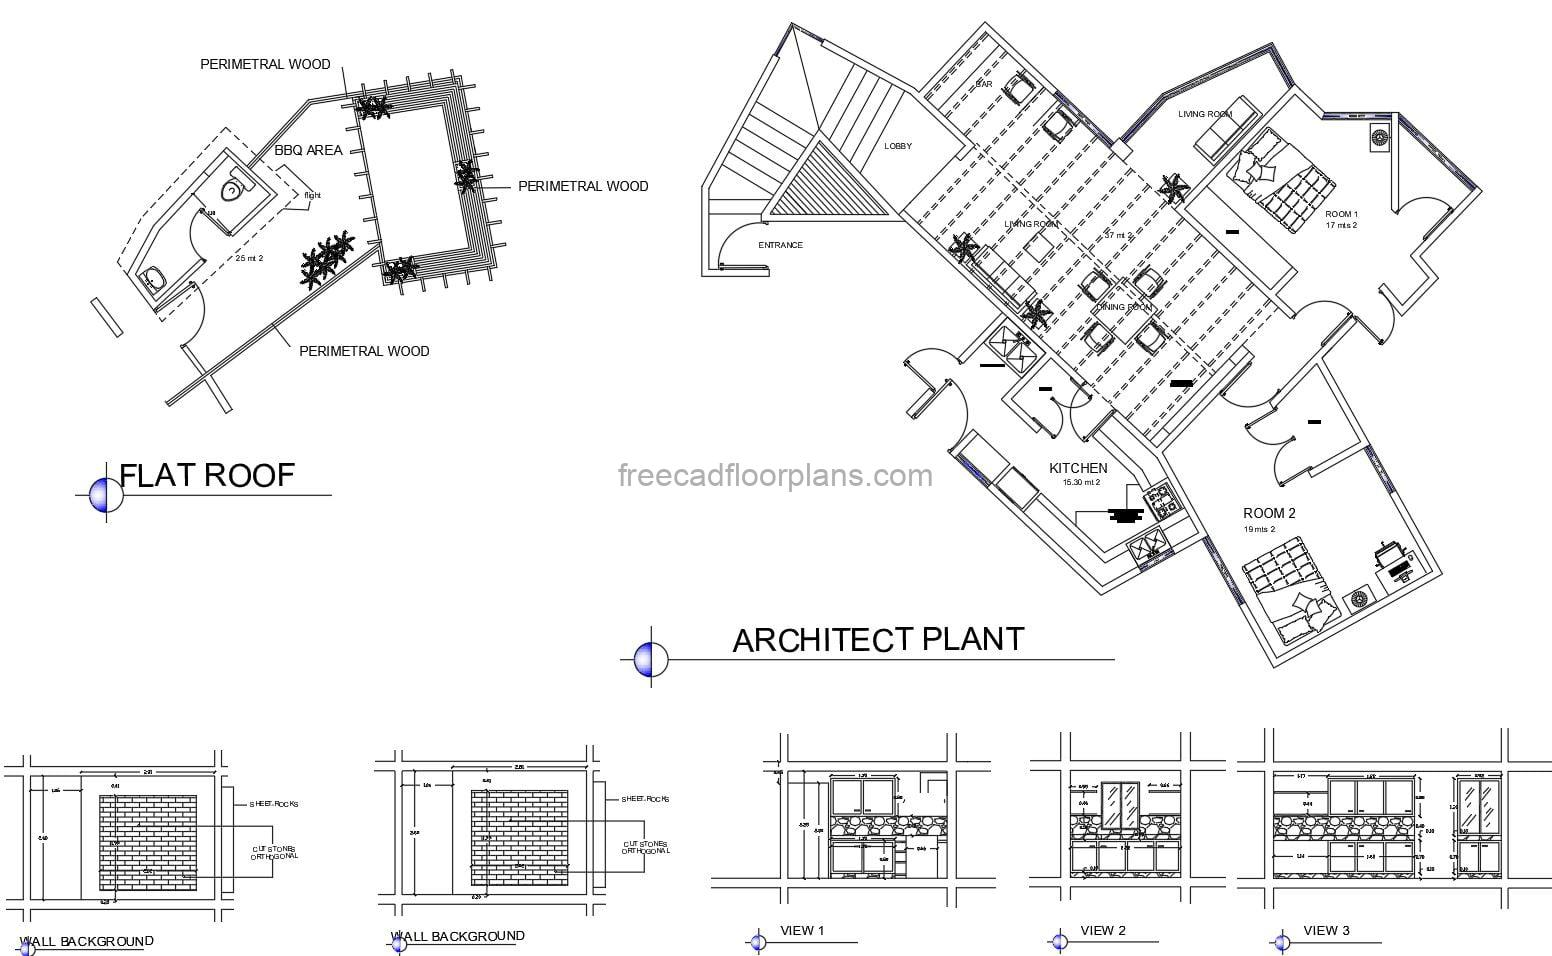 Simple Country House With Bbq On Roof Autocad Plan 1104211 Free Cad Floor Plans